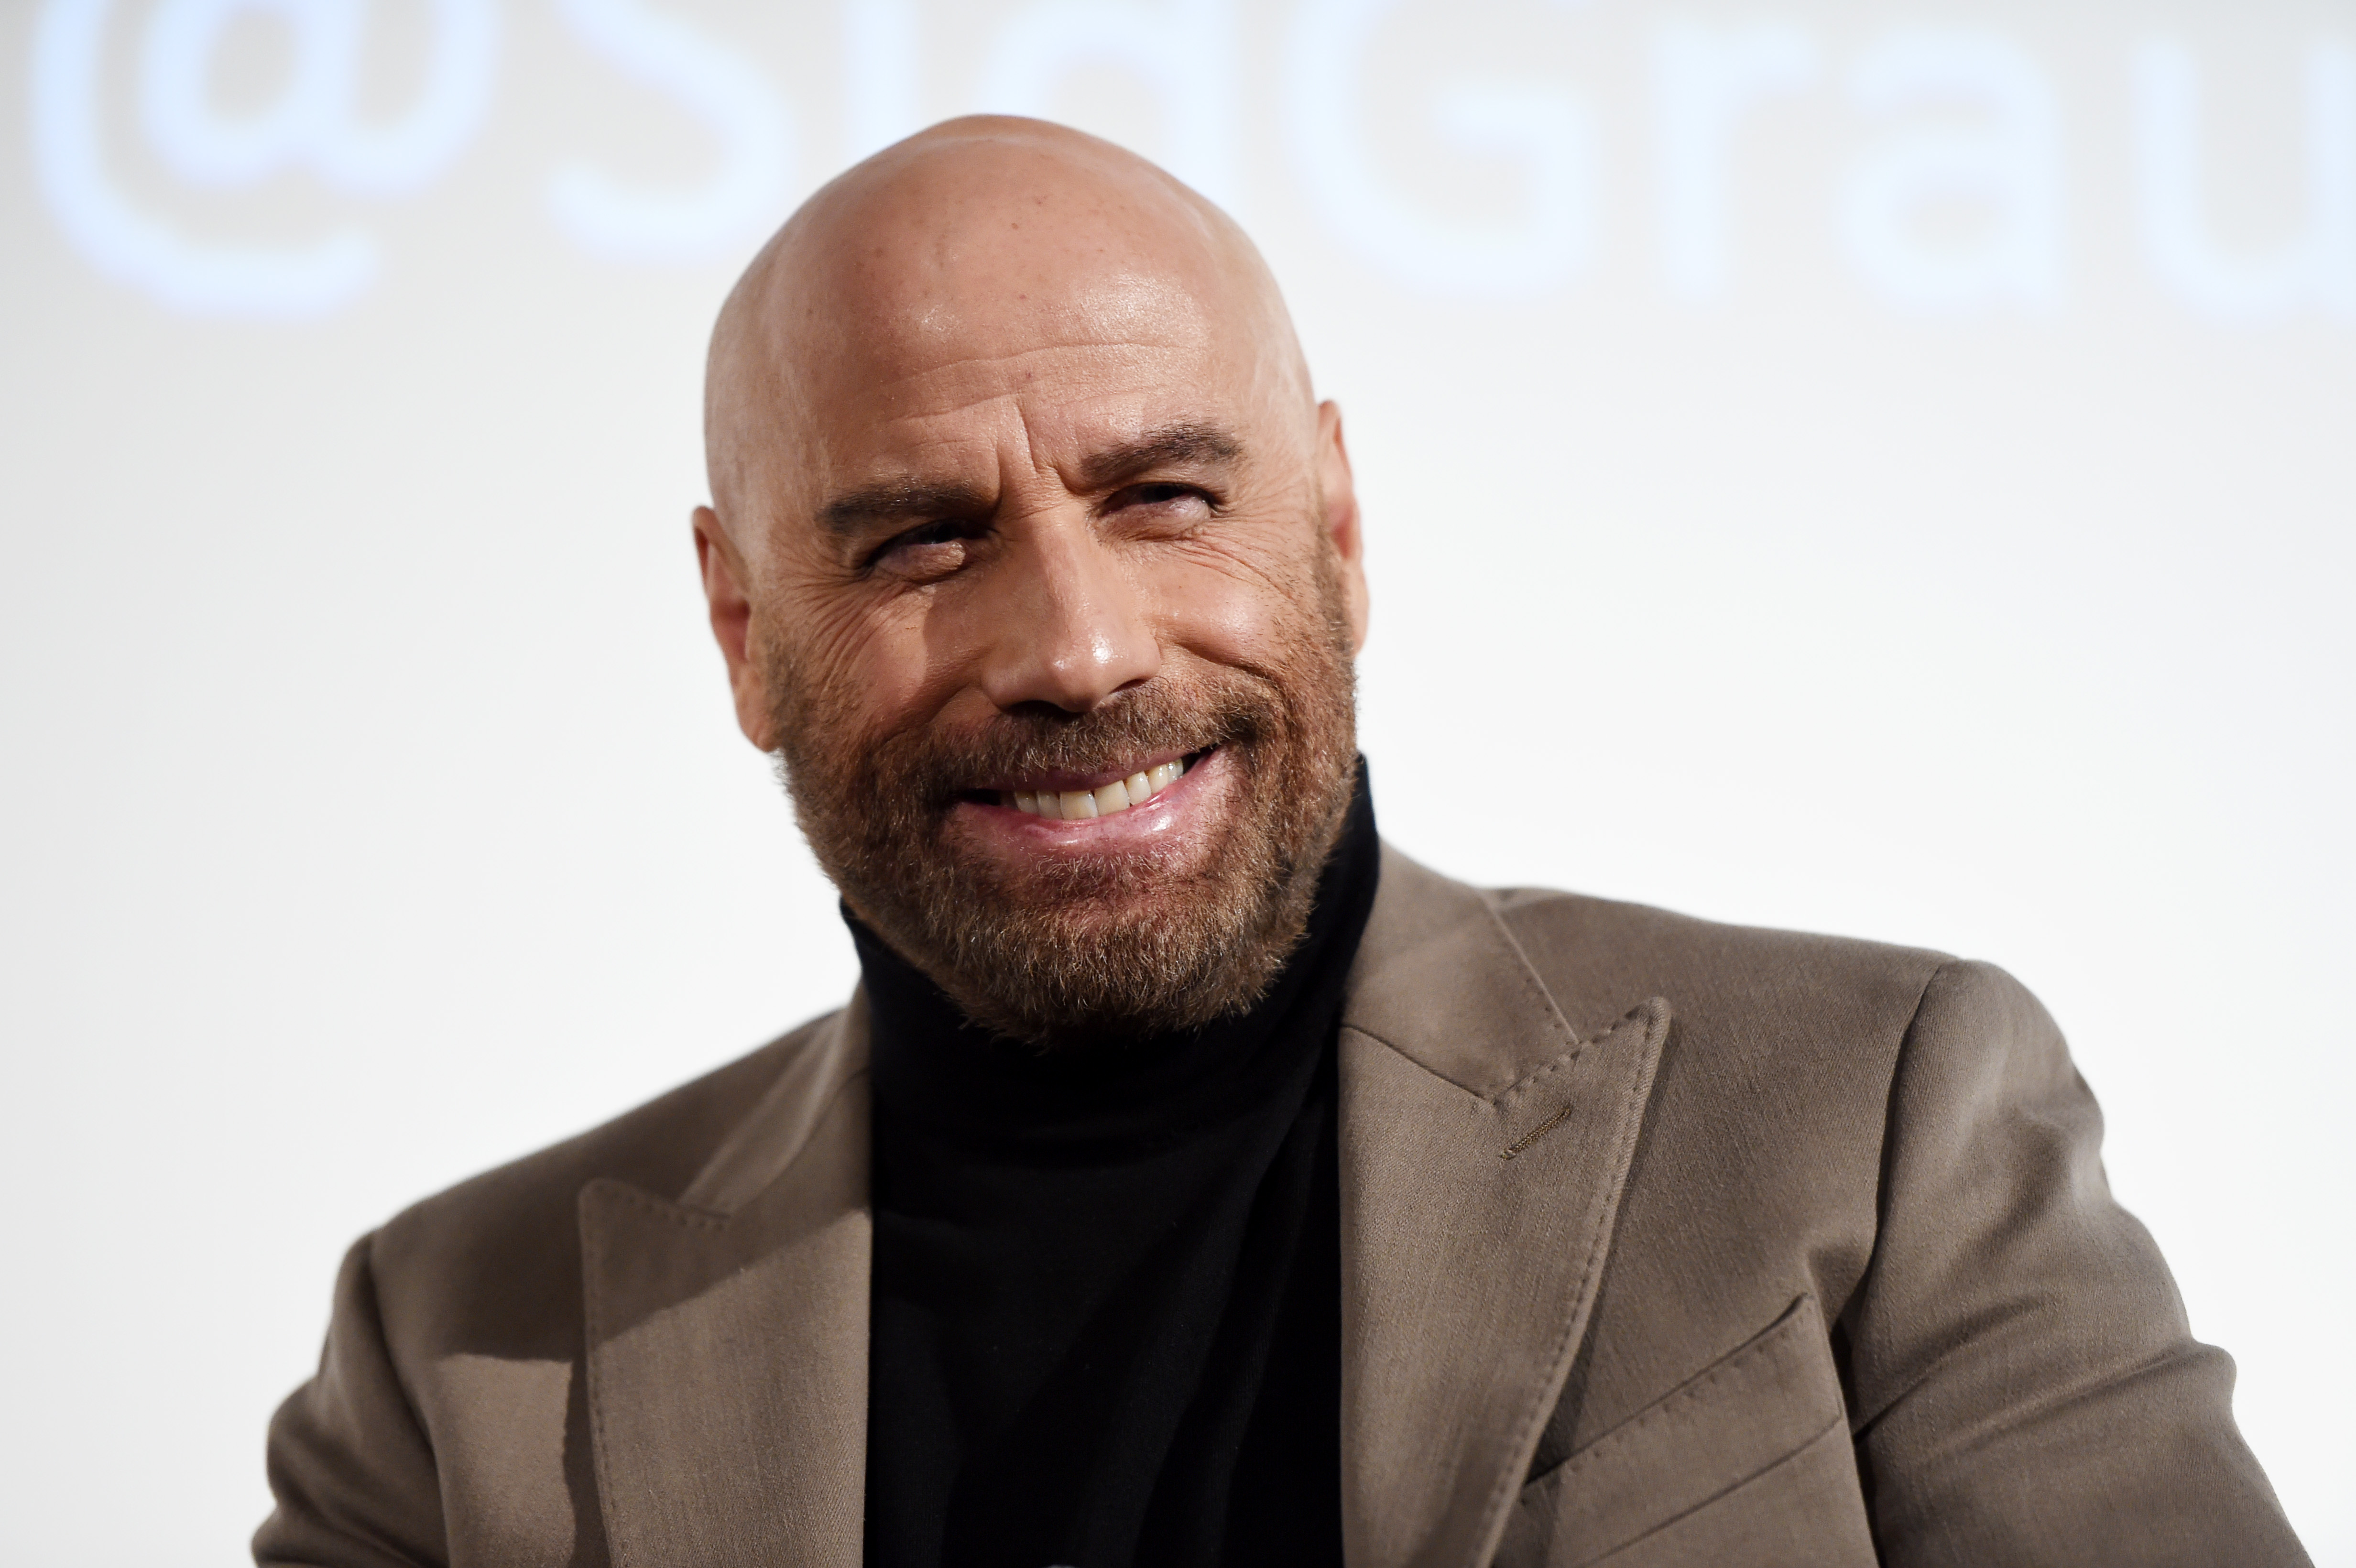 John Travolta Sold His Longtime Brentwood Home to Scooter Braun for $18 Million